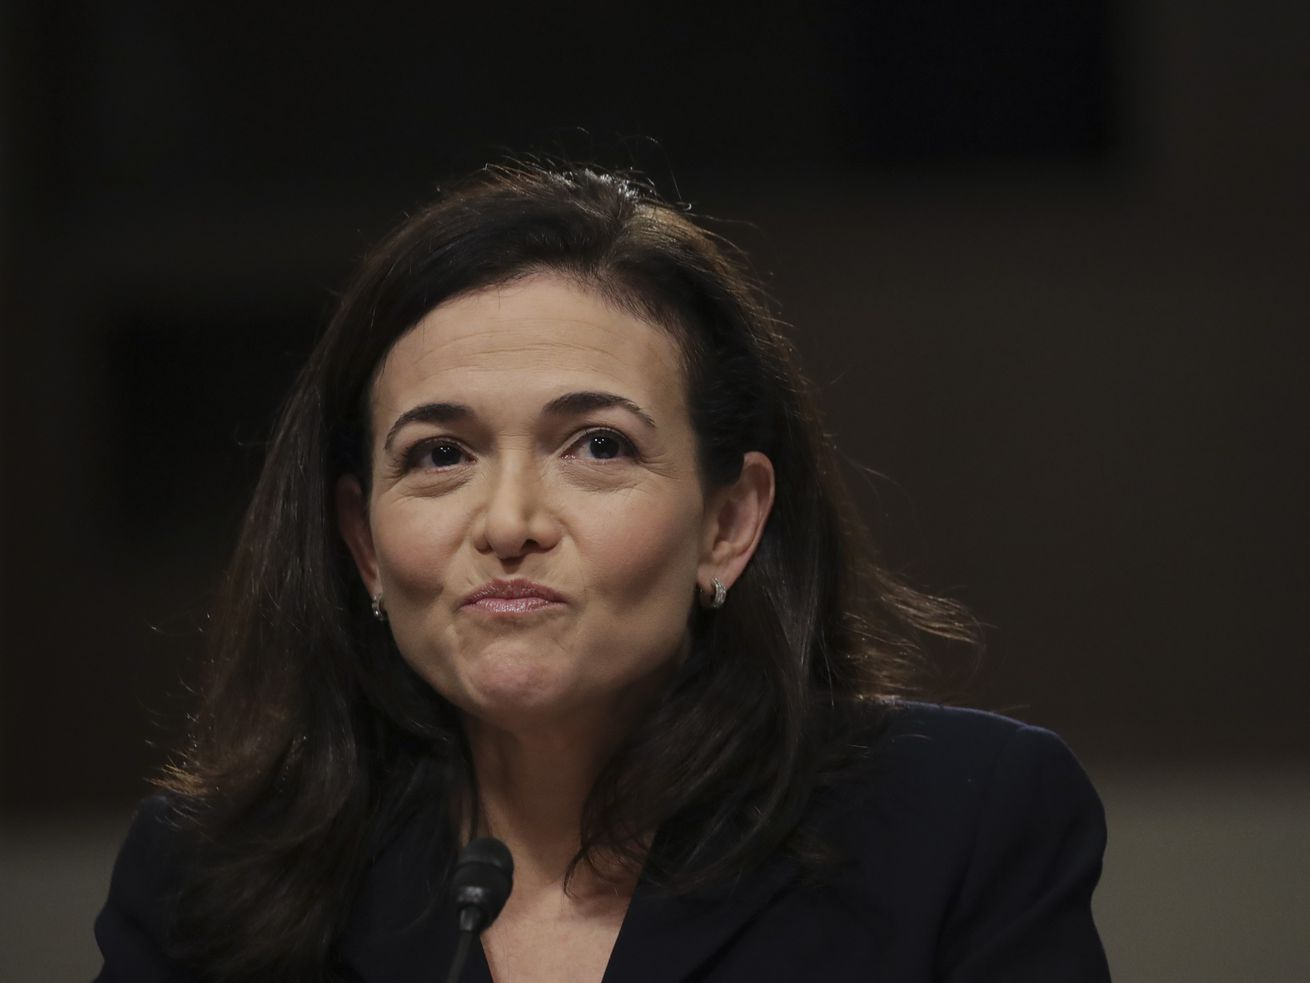 Facebook COO Sheryl Sandberg testifies on Capitol Hill in September 2018.